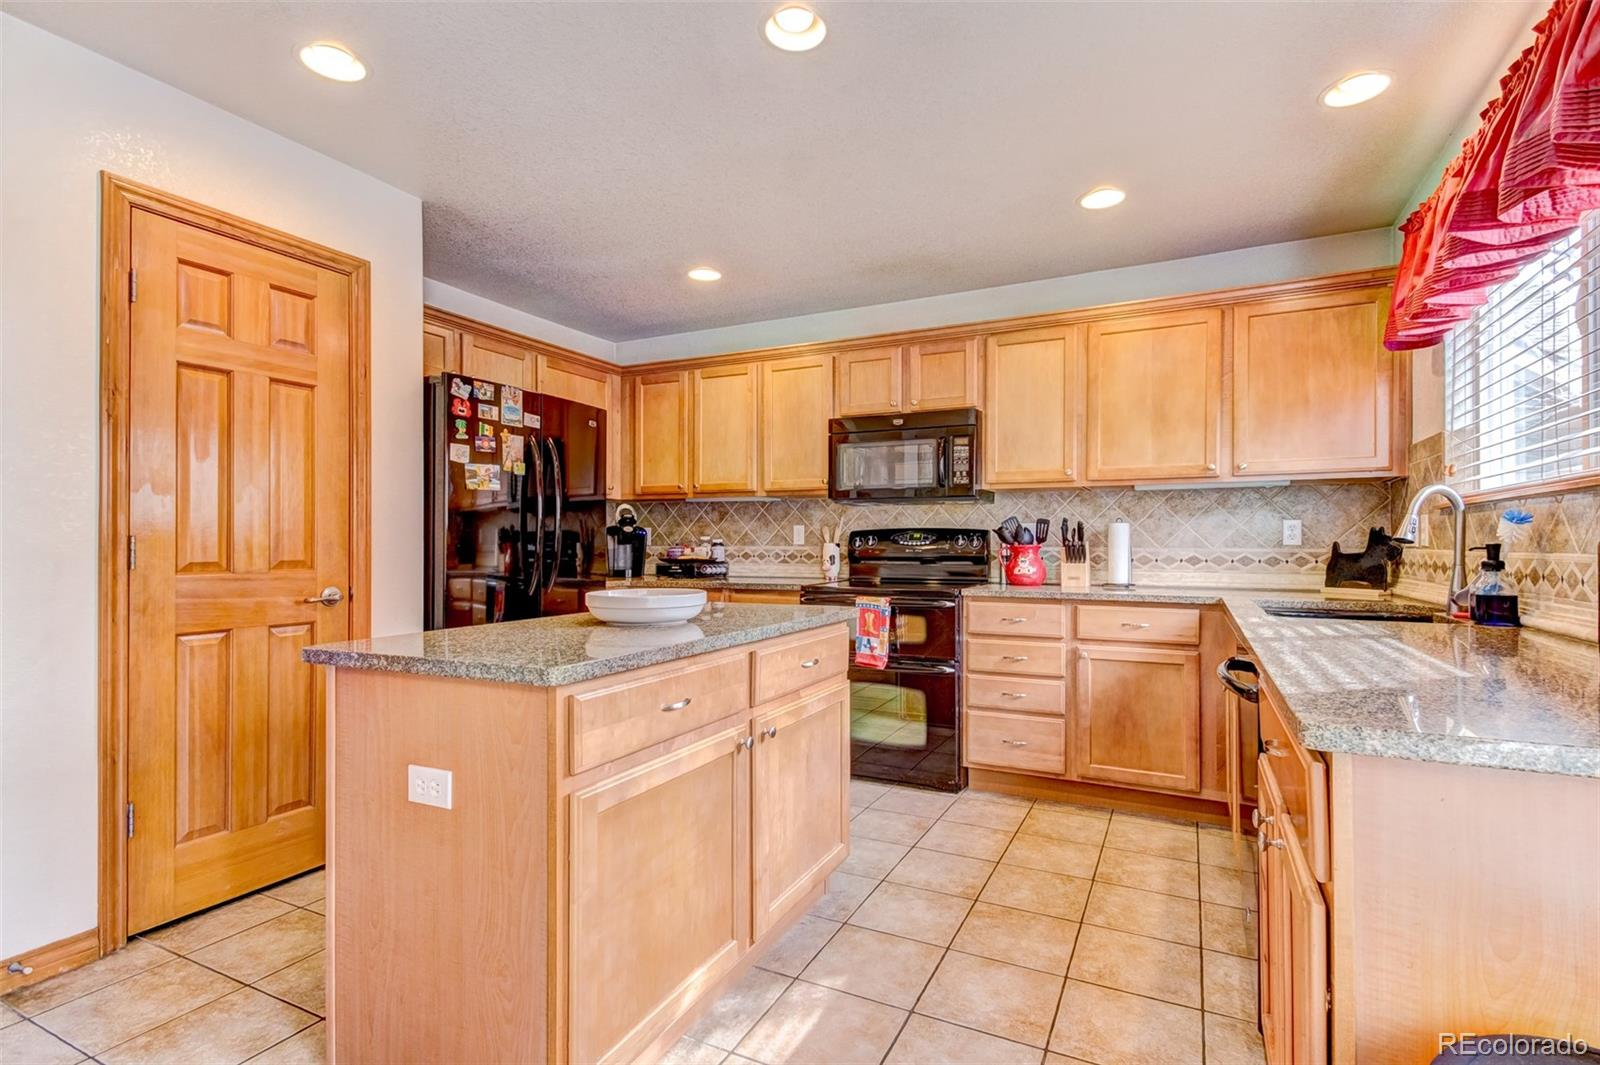 MLS# 8444903 - 5 - 7647 Bentwater Drive, Fountain, CO 80817